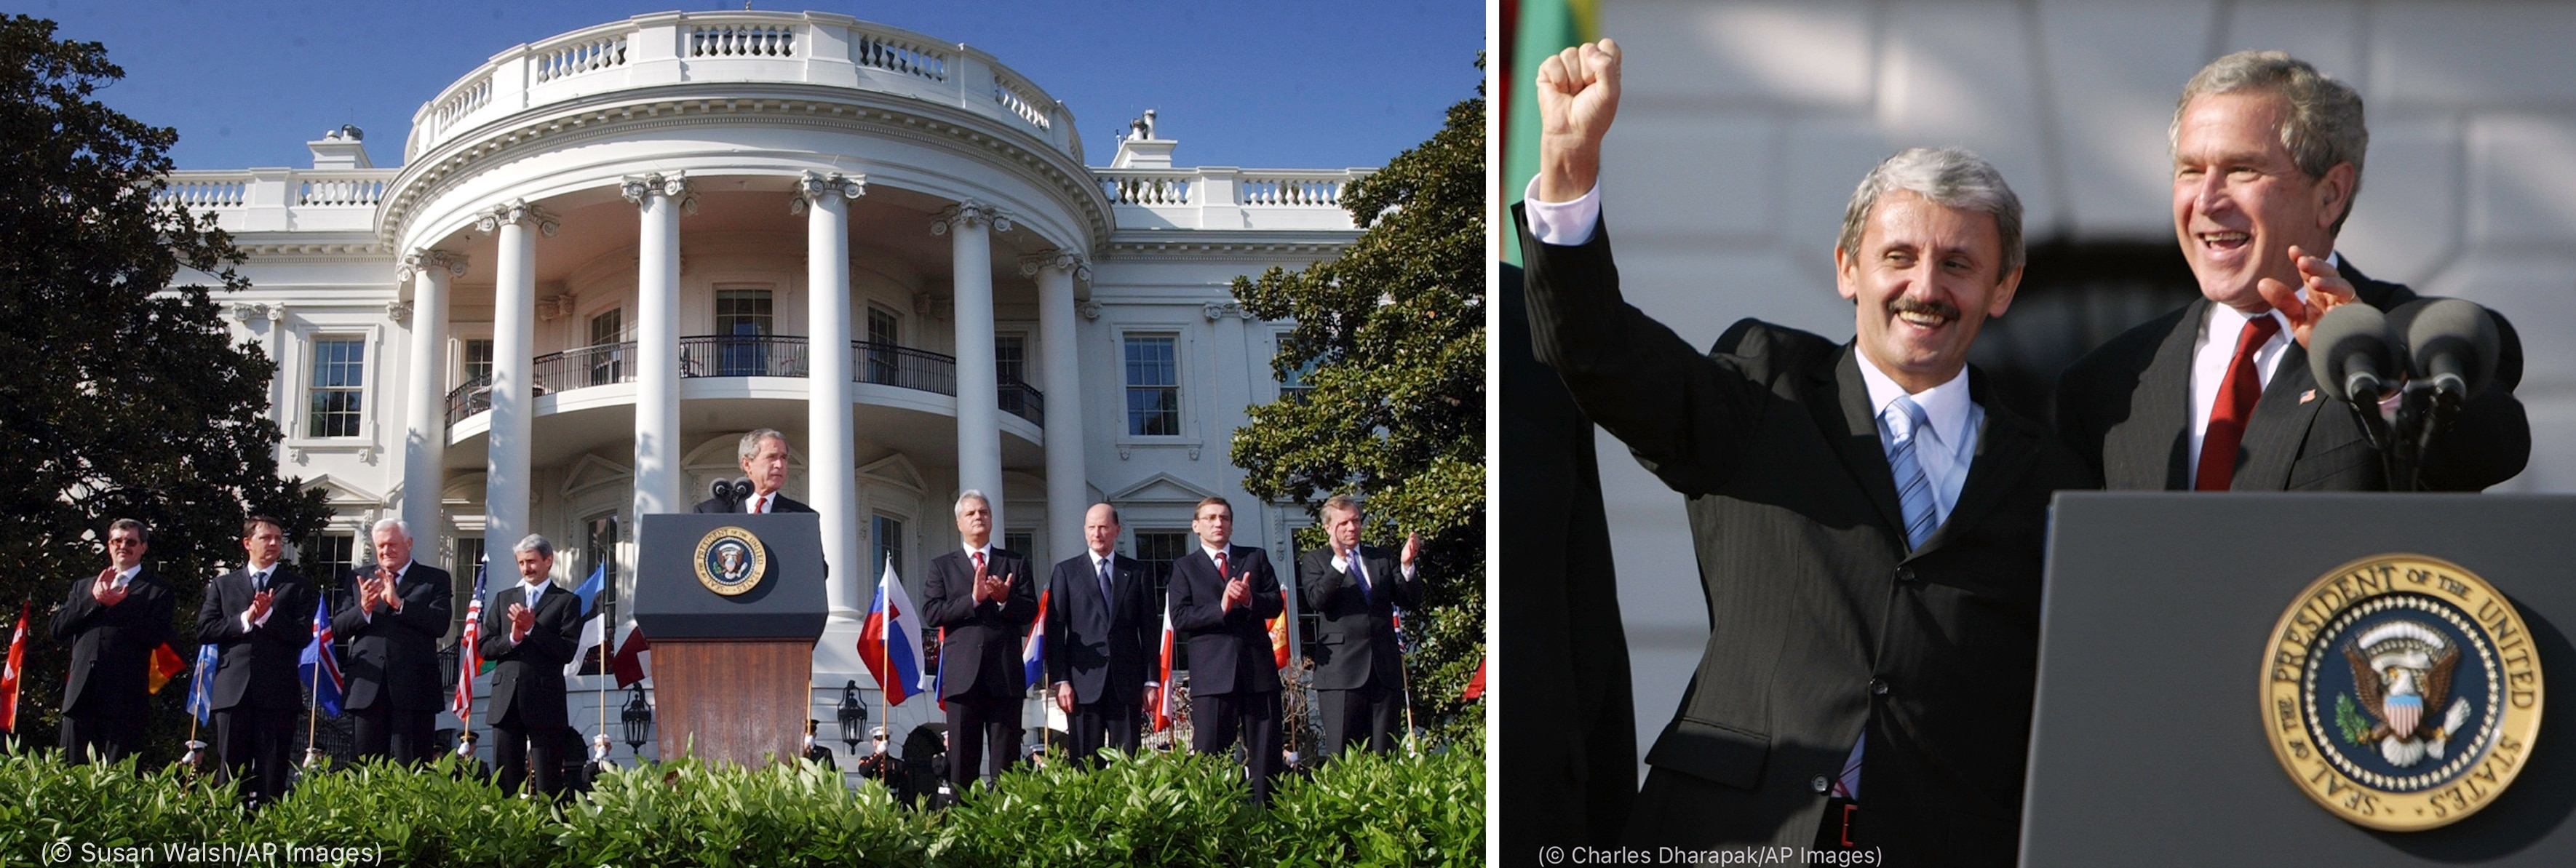 Left photo: George W. Bush speaking in front of White House (© Susan Walsh/AP Images) Right photo: George W. Bush and Mikuláš Dzurinda standing near lectern, waving (© Charles Dharapak/AP Images)